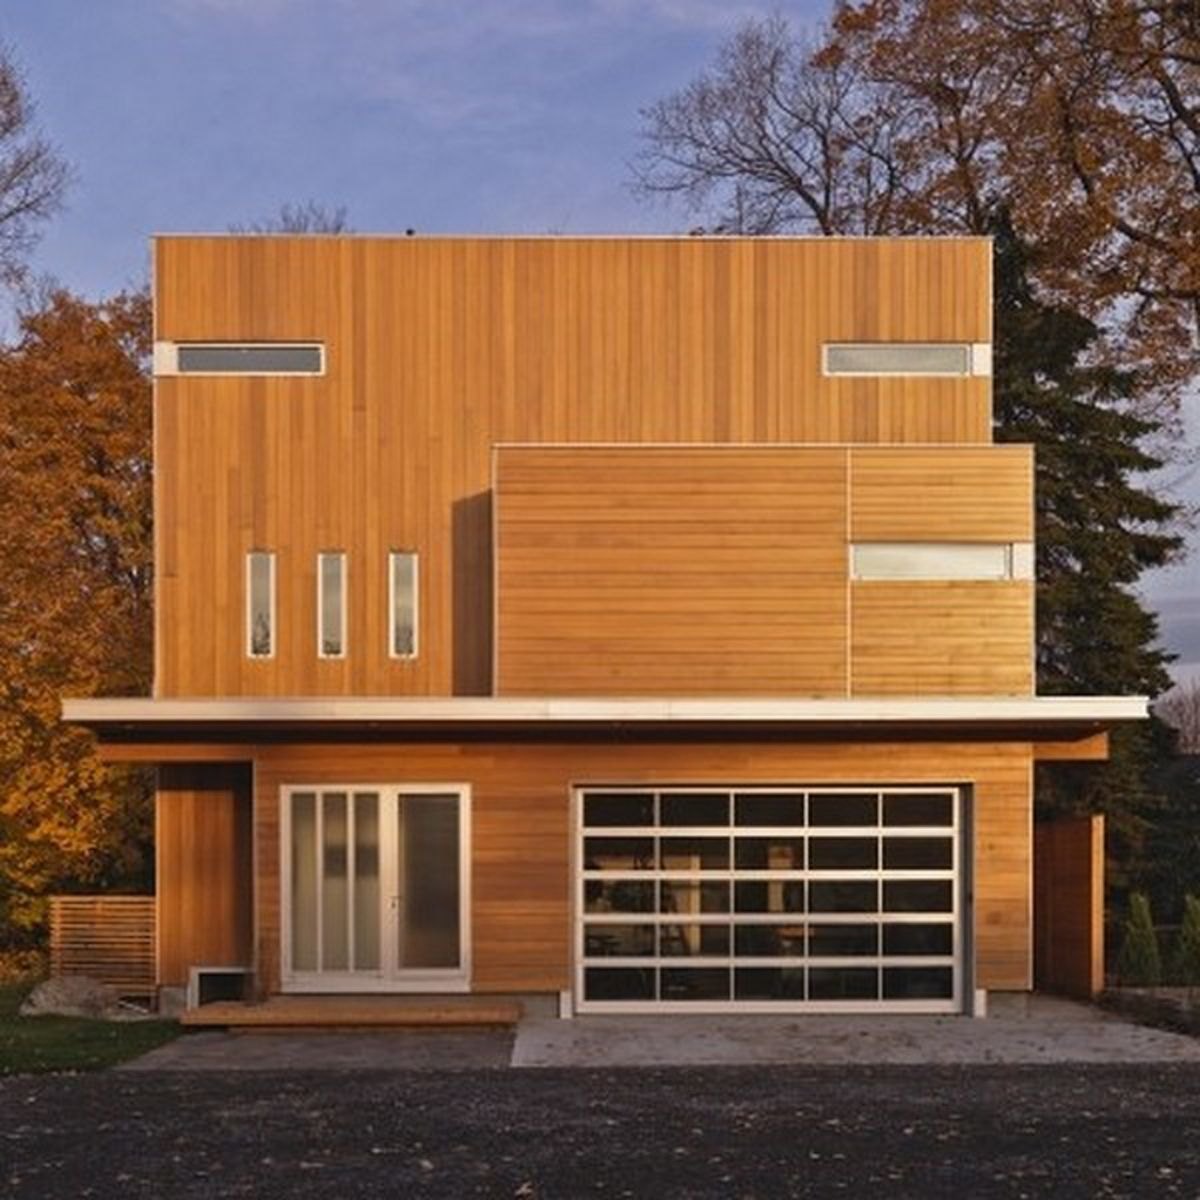 1000+ images about Wood Houses on Pinterest - ^